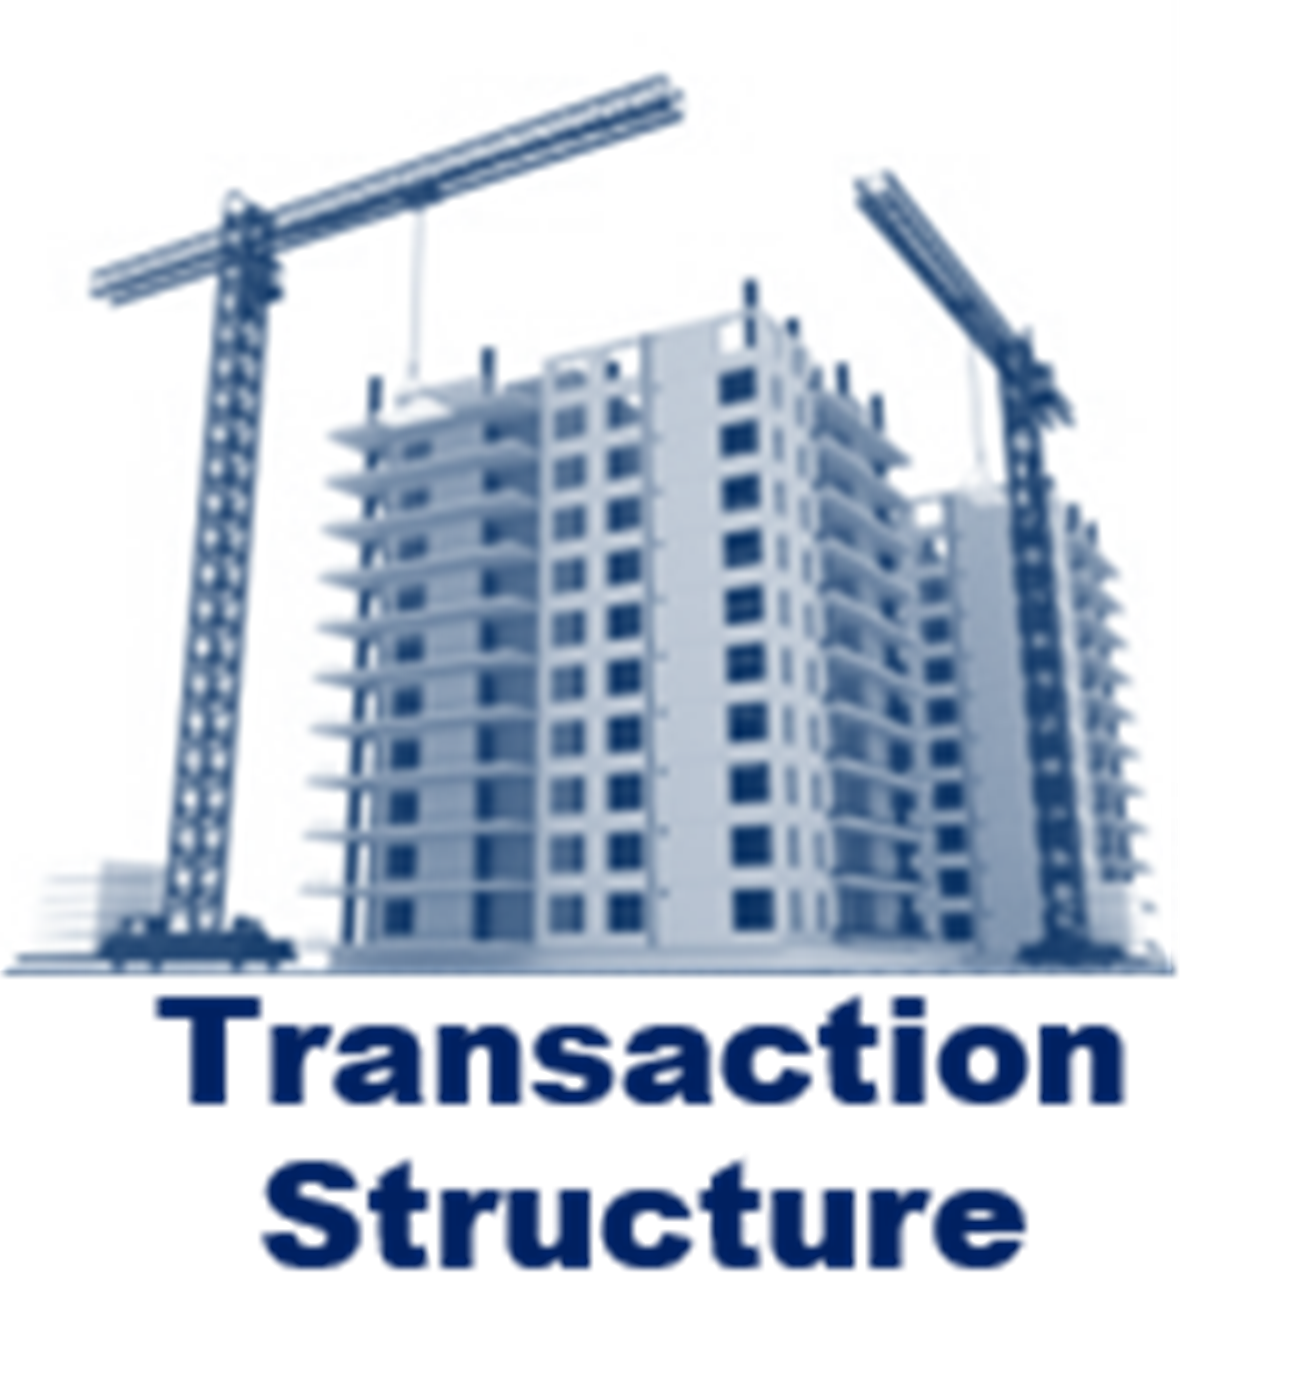 Deal Structures Today: Earnout Issues and Liabilities